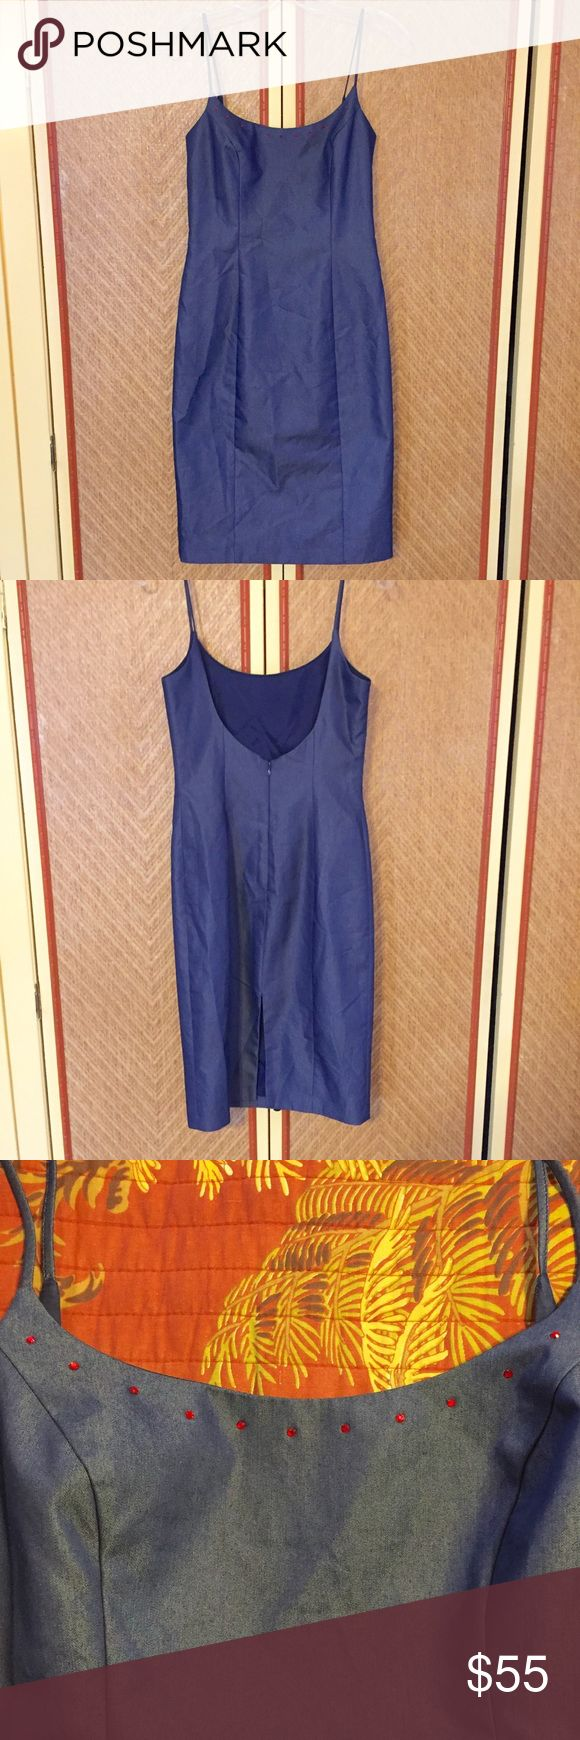 ABS by Allen Schwartz navy blue cocktail dress Beautiful form fitting cocktail dress. Navy blue with a denim look. Small red rhinestones adorn the neckline. Spaghetti straps, scoop back, back zip, and center back slit.   Size 4, please let me know if you would like any measurements.   Excellent preowned condition. ABS Allen Schwartz Dresses